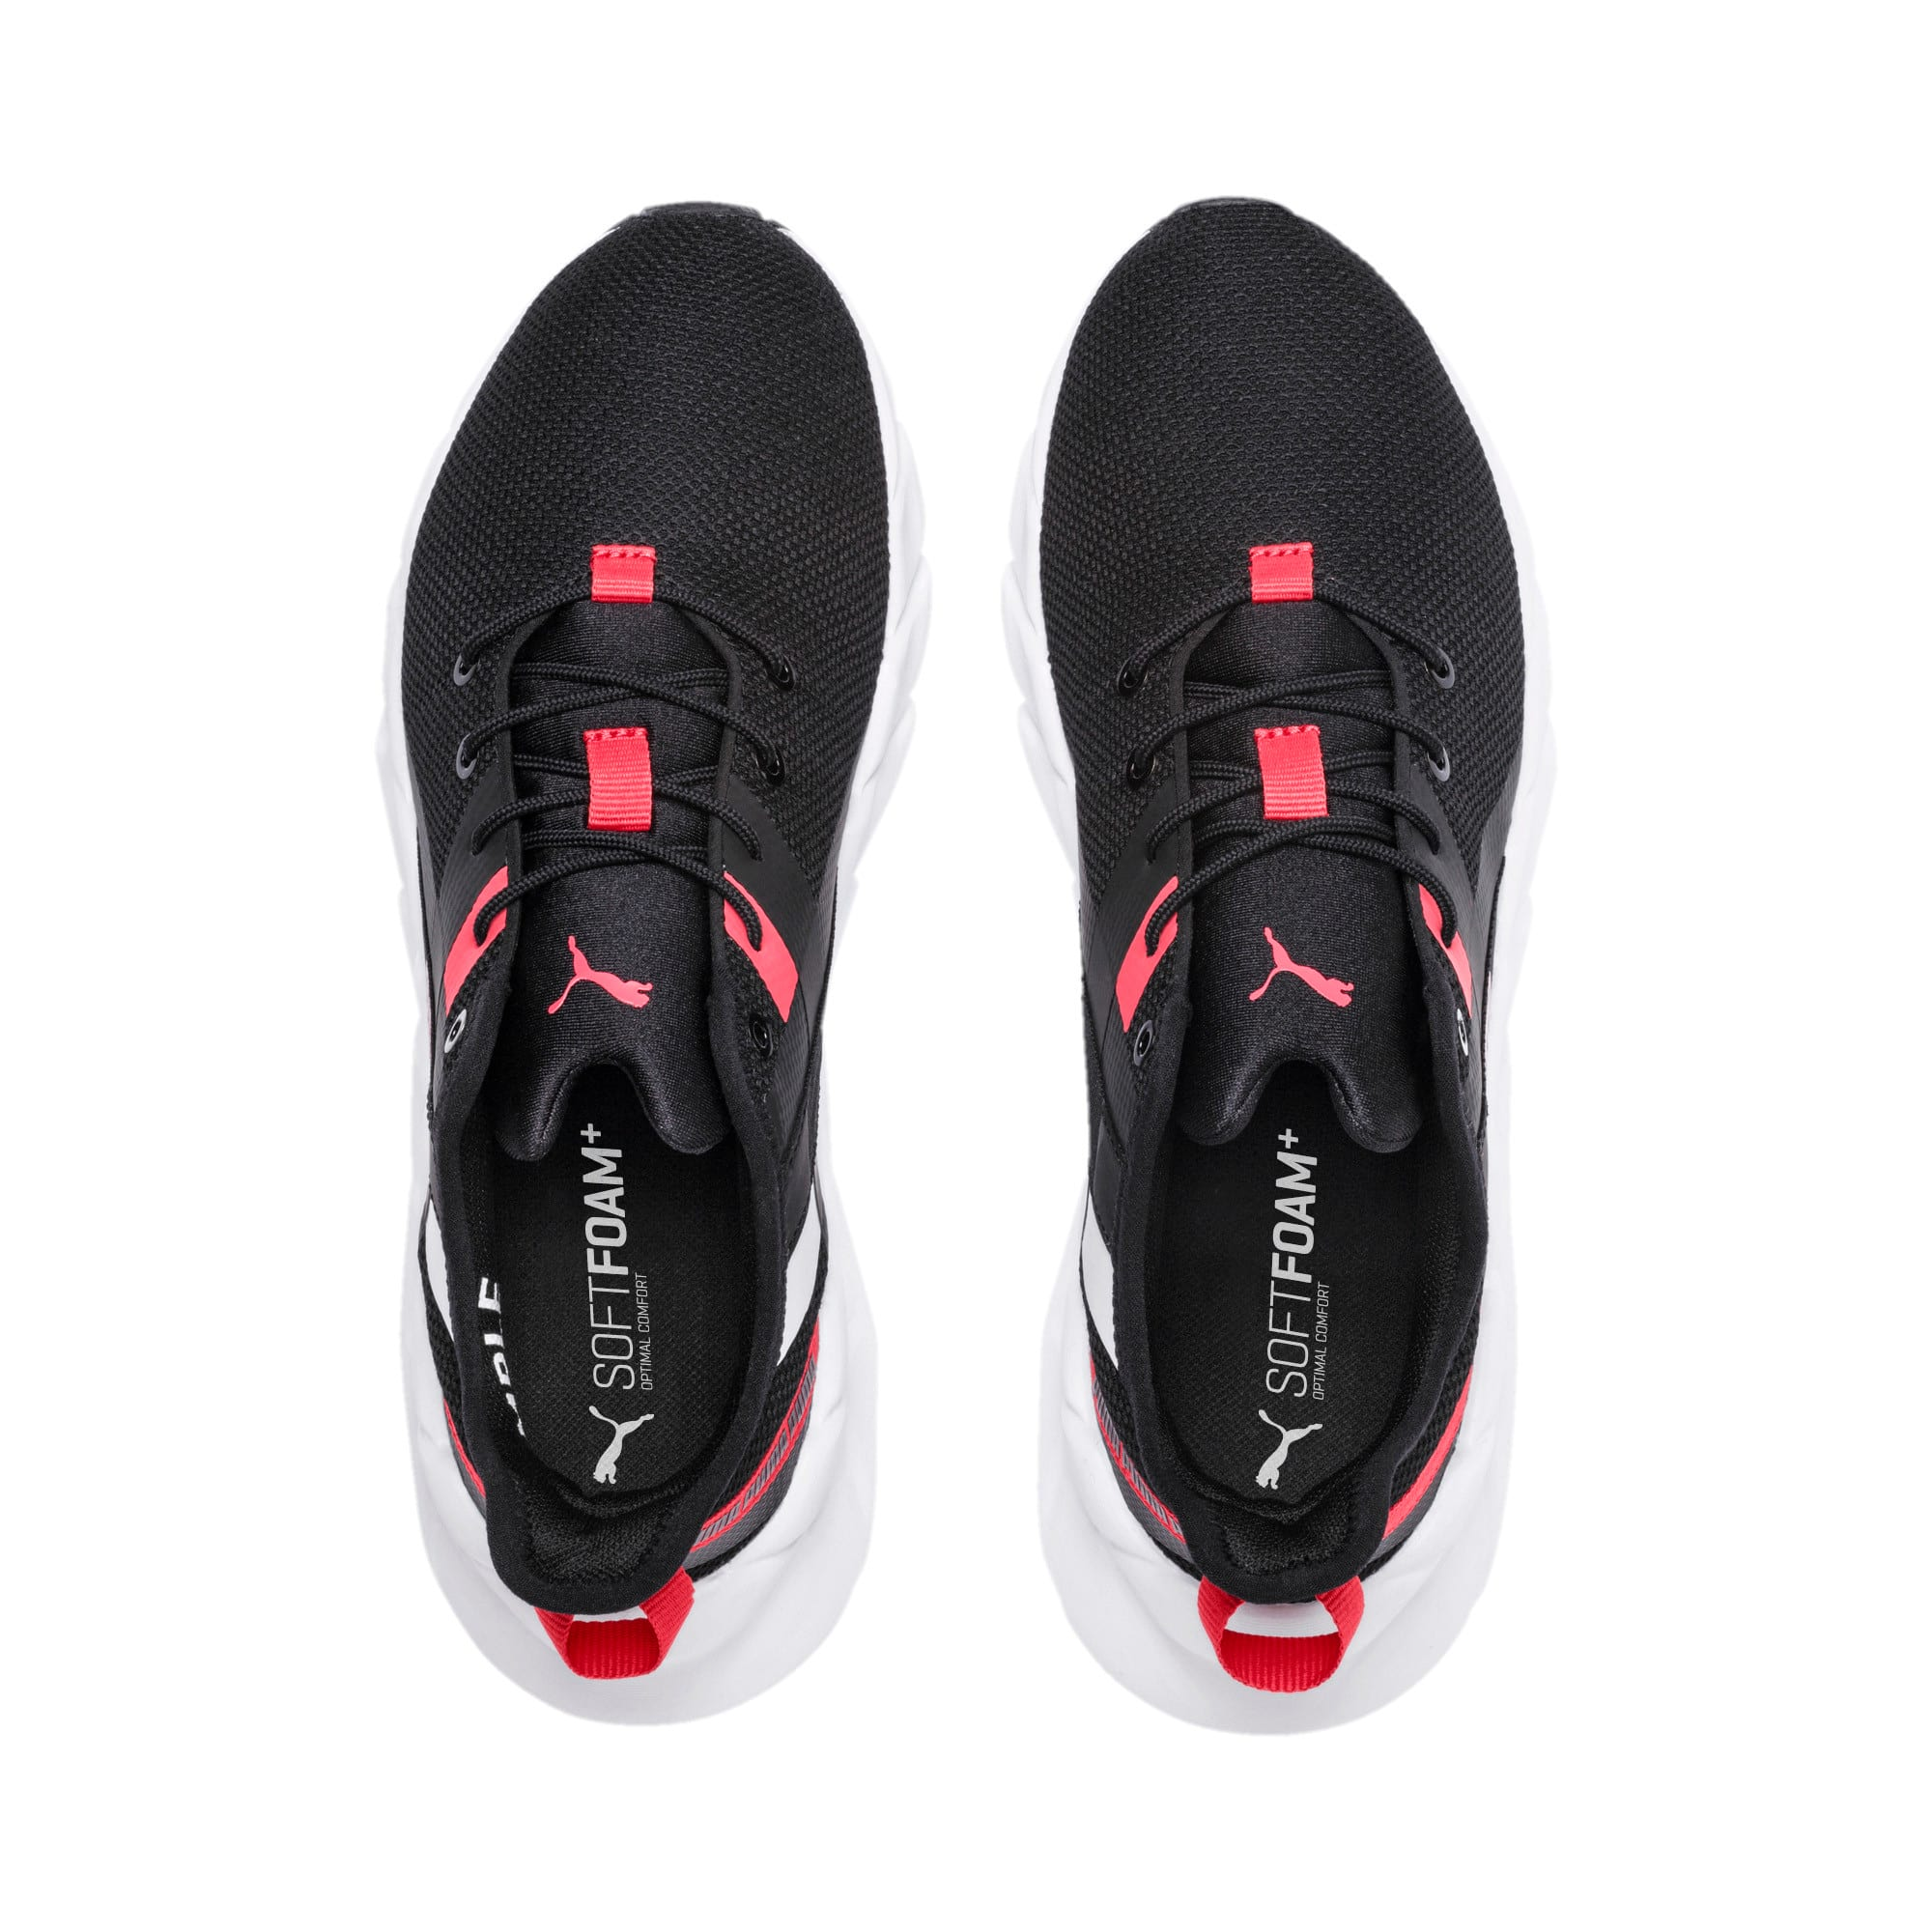 Thumbnail 2 of Weave XT Youth Trainers, Black-White-Calypso Coral, medium-IND